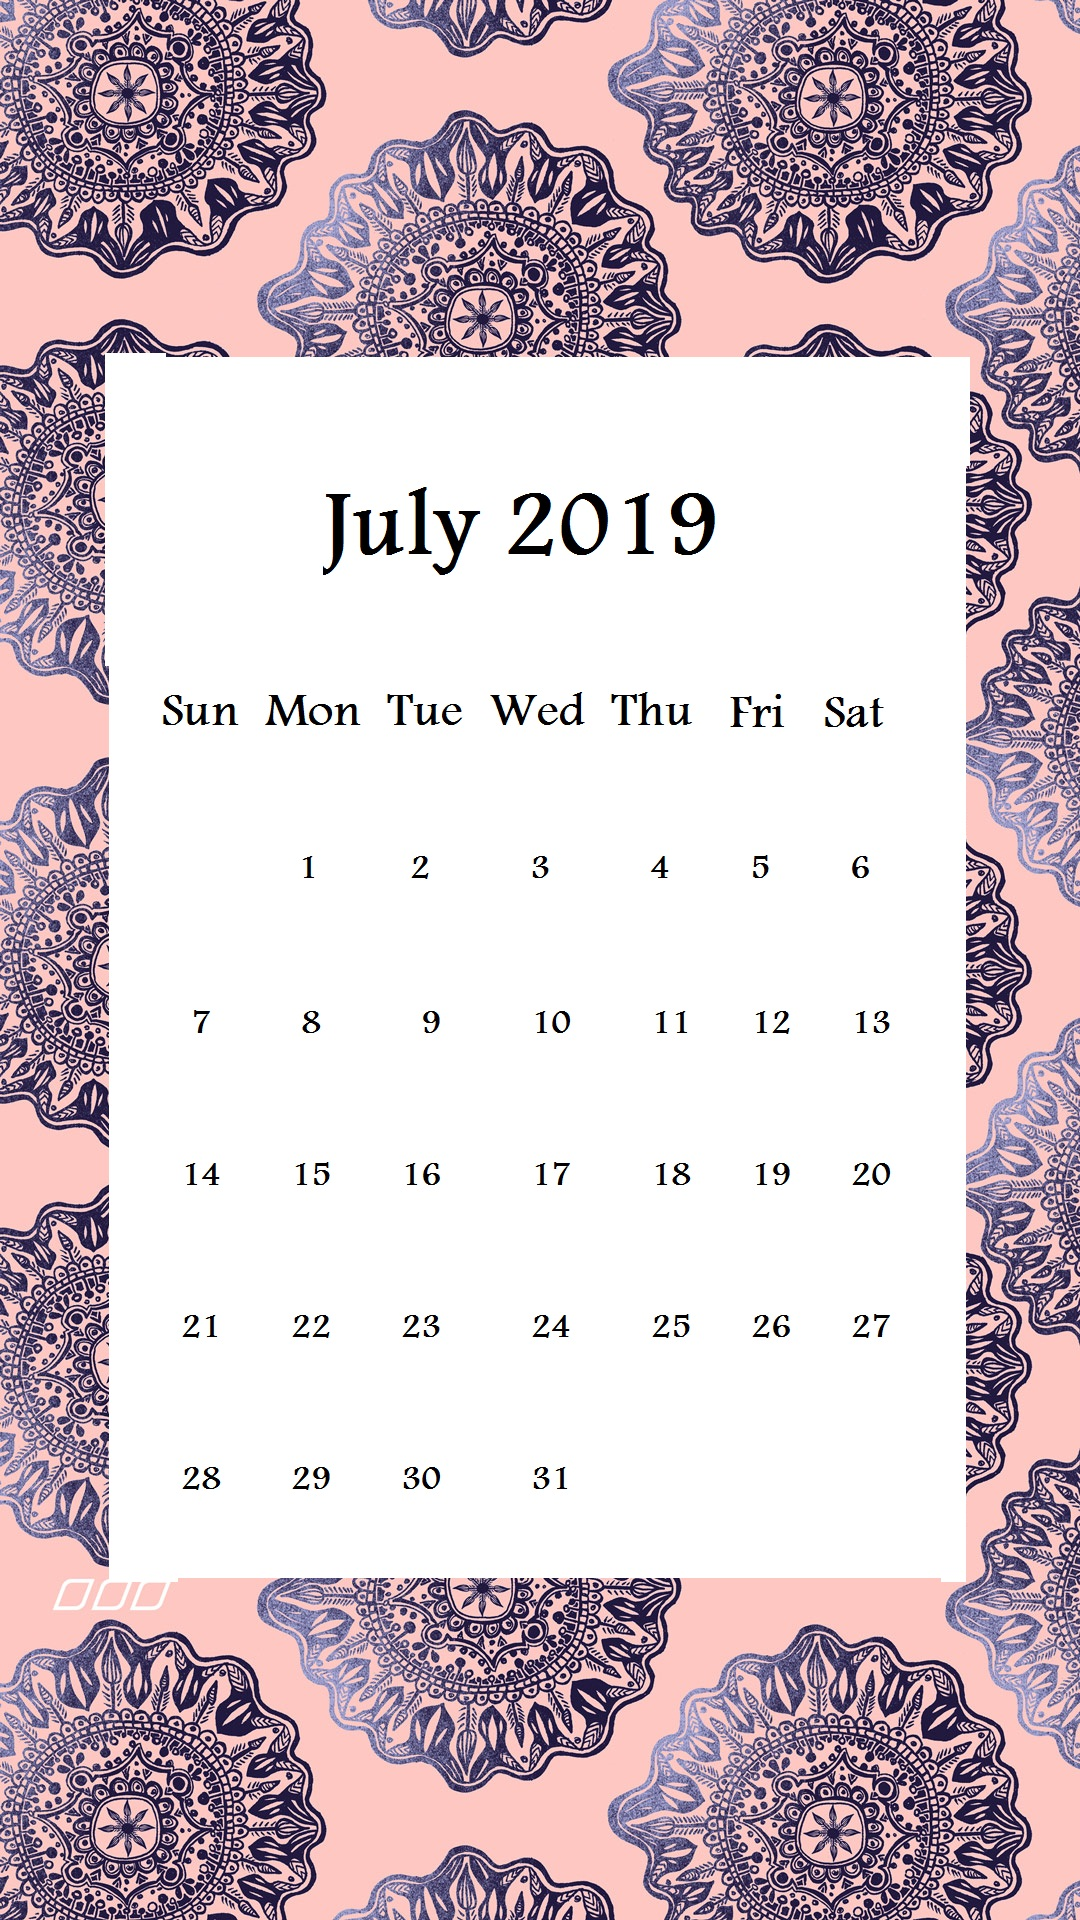 Pattern Design July 2019 iPhone Wallpaper